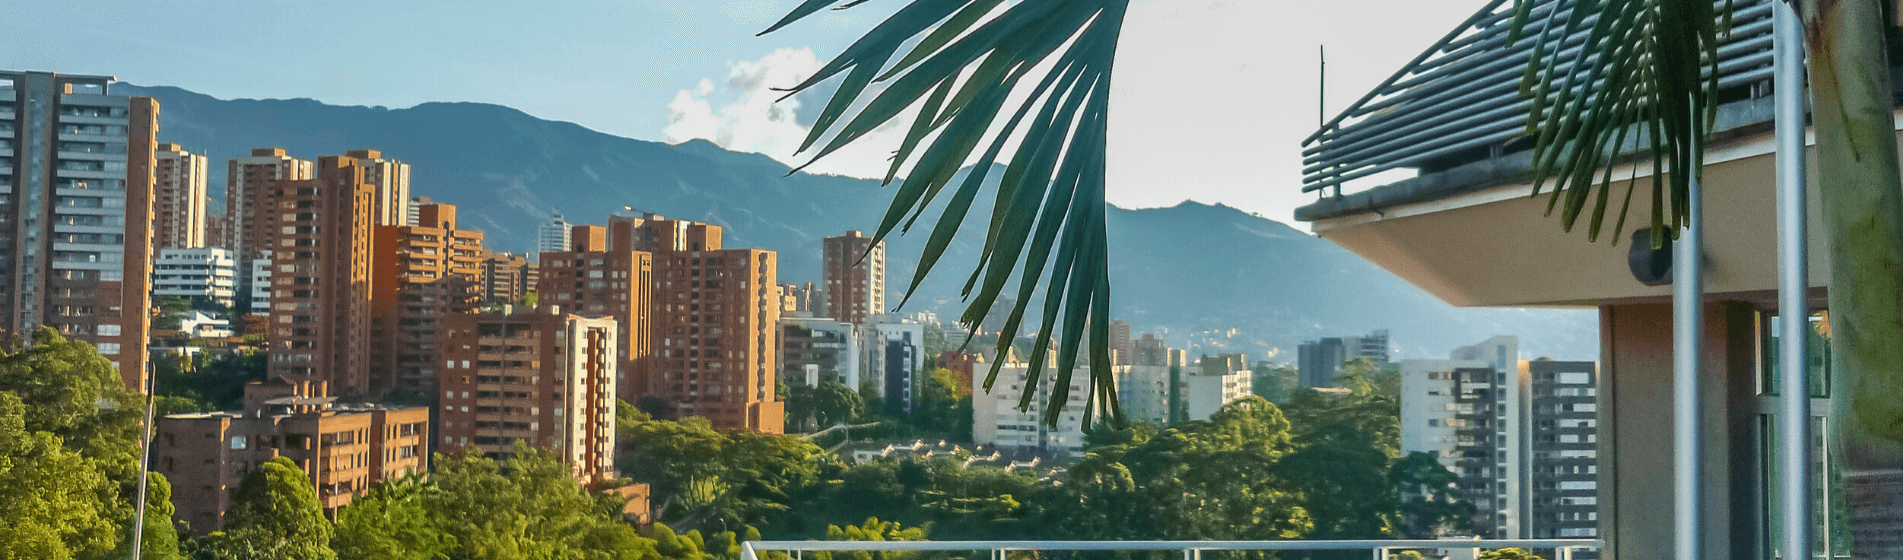 Investing in Medellin, Colombia: three ways to profit